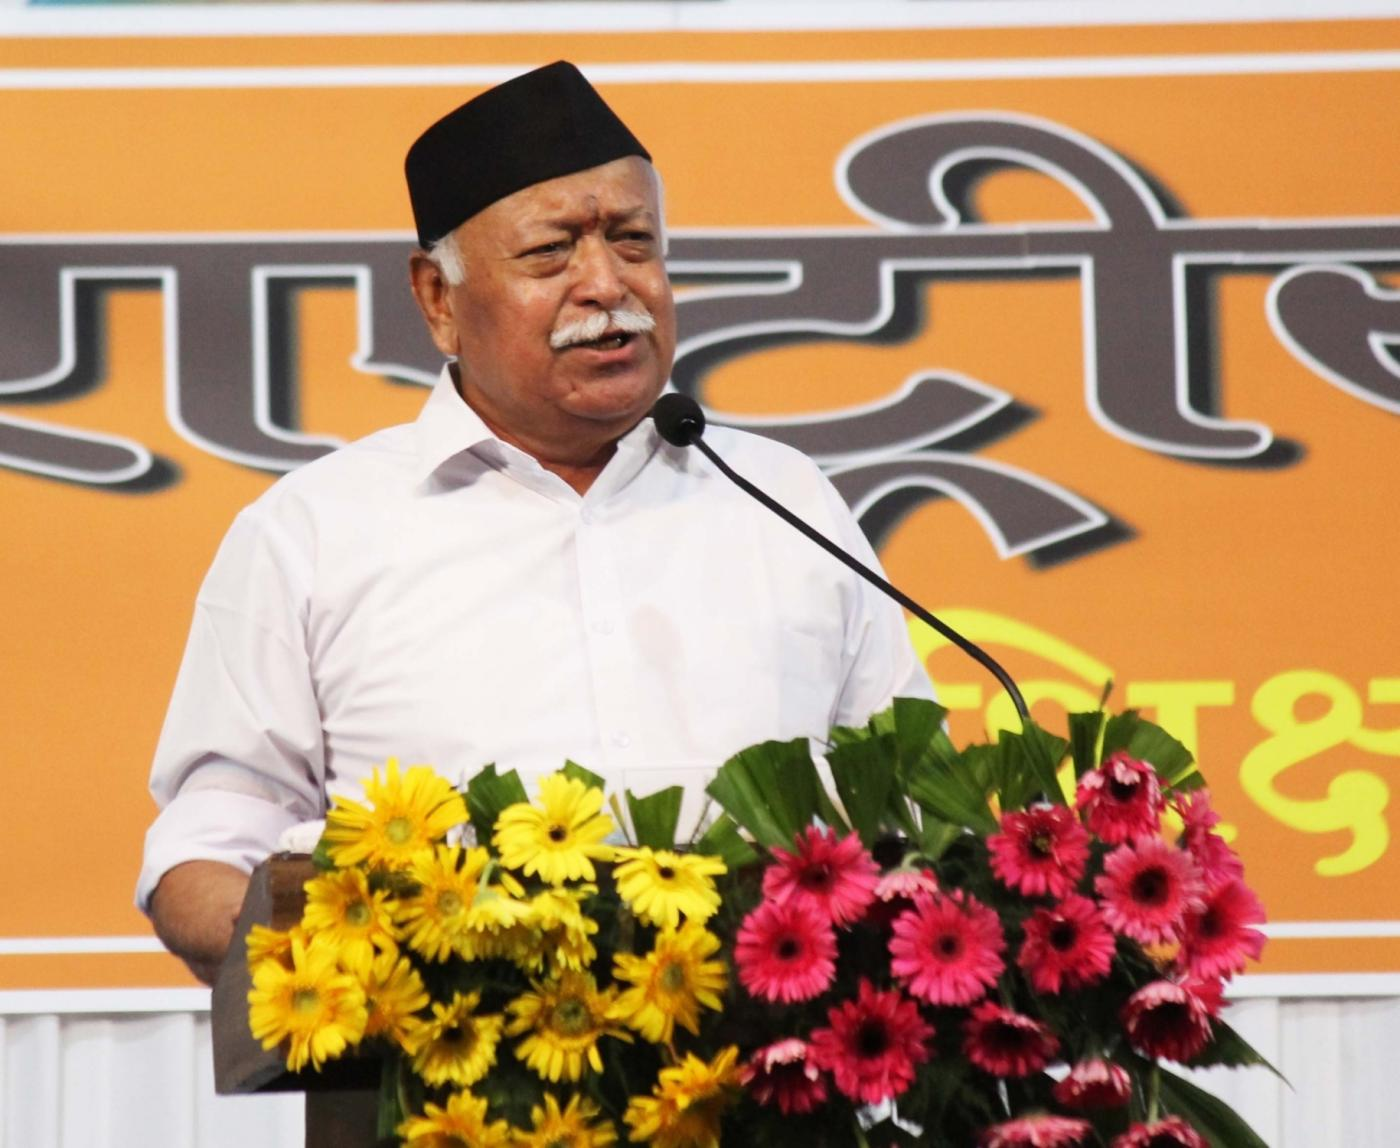 """Nagpur: RSS chief Mohan Bhagwat addresses at the concluding function of """"Tritiya Varsh Varg"""" in Nagpur on June 7, 2018. (Photo: IANS) by ."""